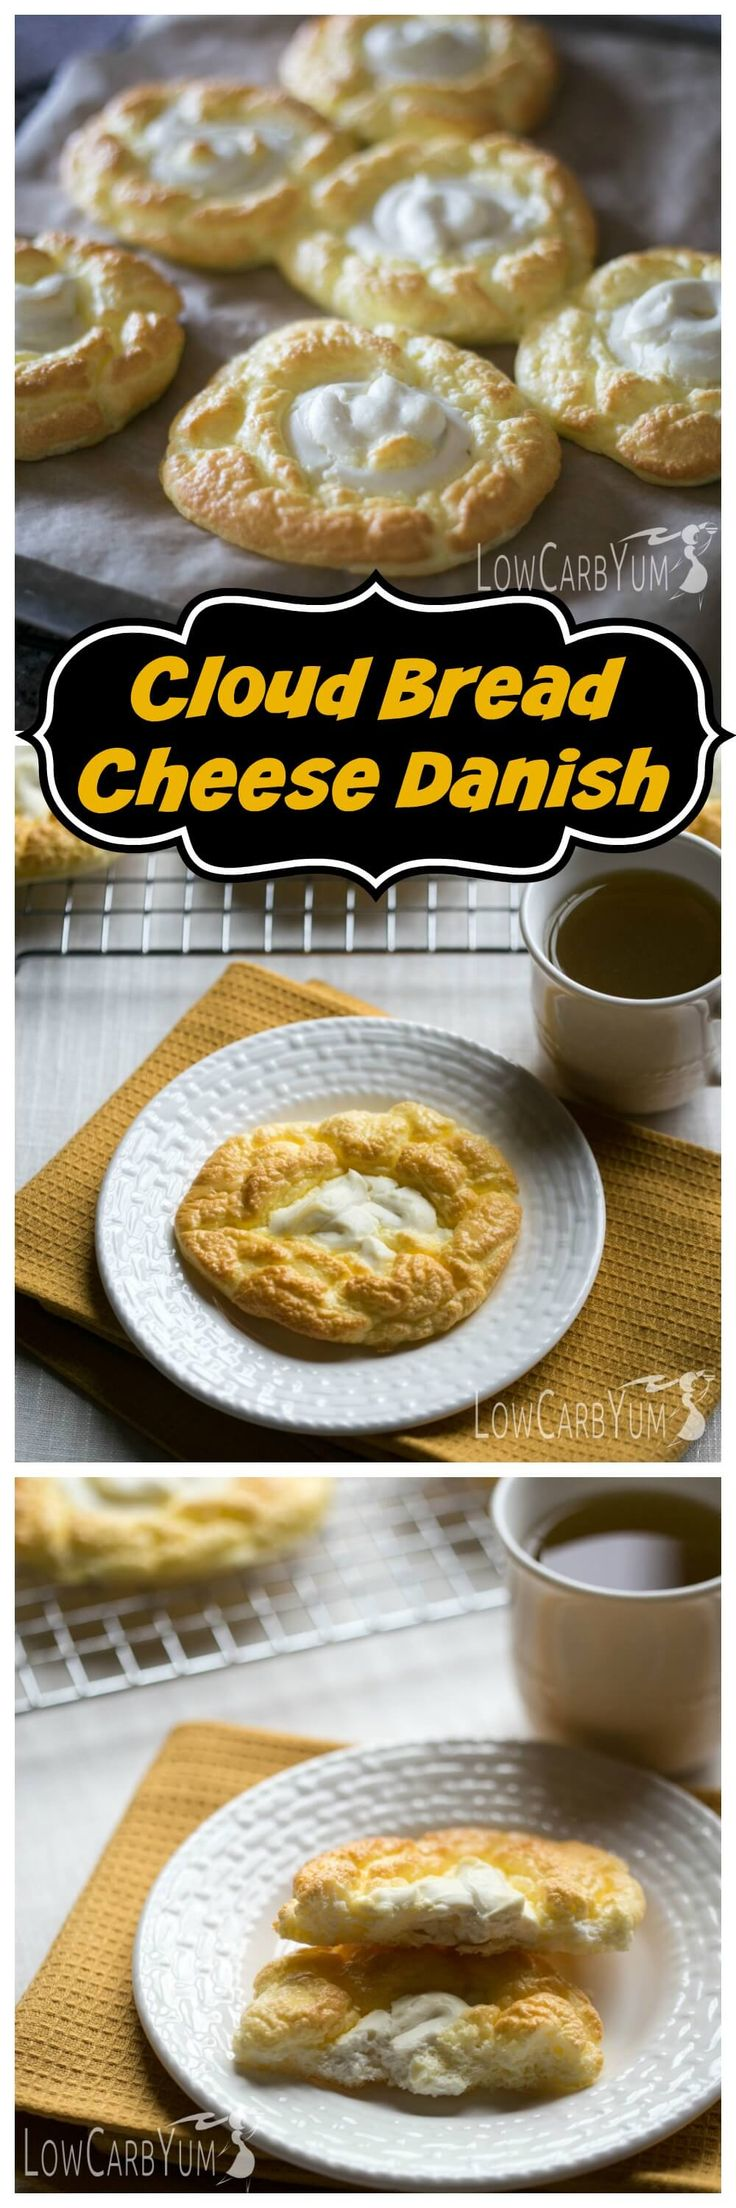 An egg fast friendly cloud bread cheese danish recipe that's super low in total carbs. It's a nice low carb treat to enjoy any time of day.   LowCarbYum.com